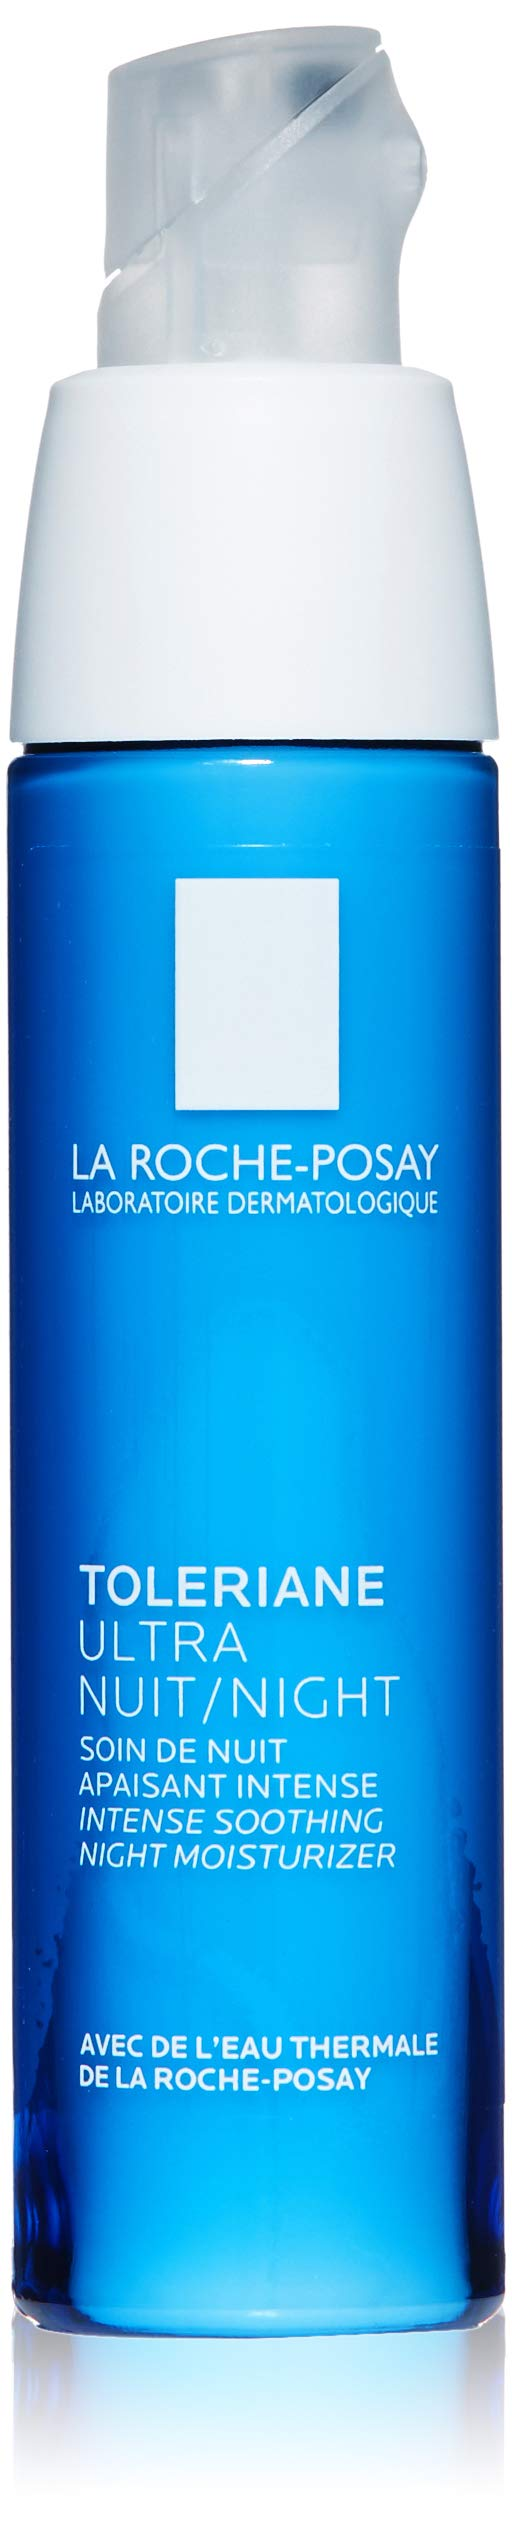 La Roche-Posay Toleriane Ultra Night Cream for Face Intense Soothing Moisturizer, Allergy Tested, 1.35 Fl. Oz.